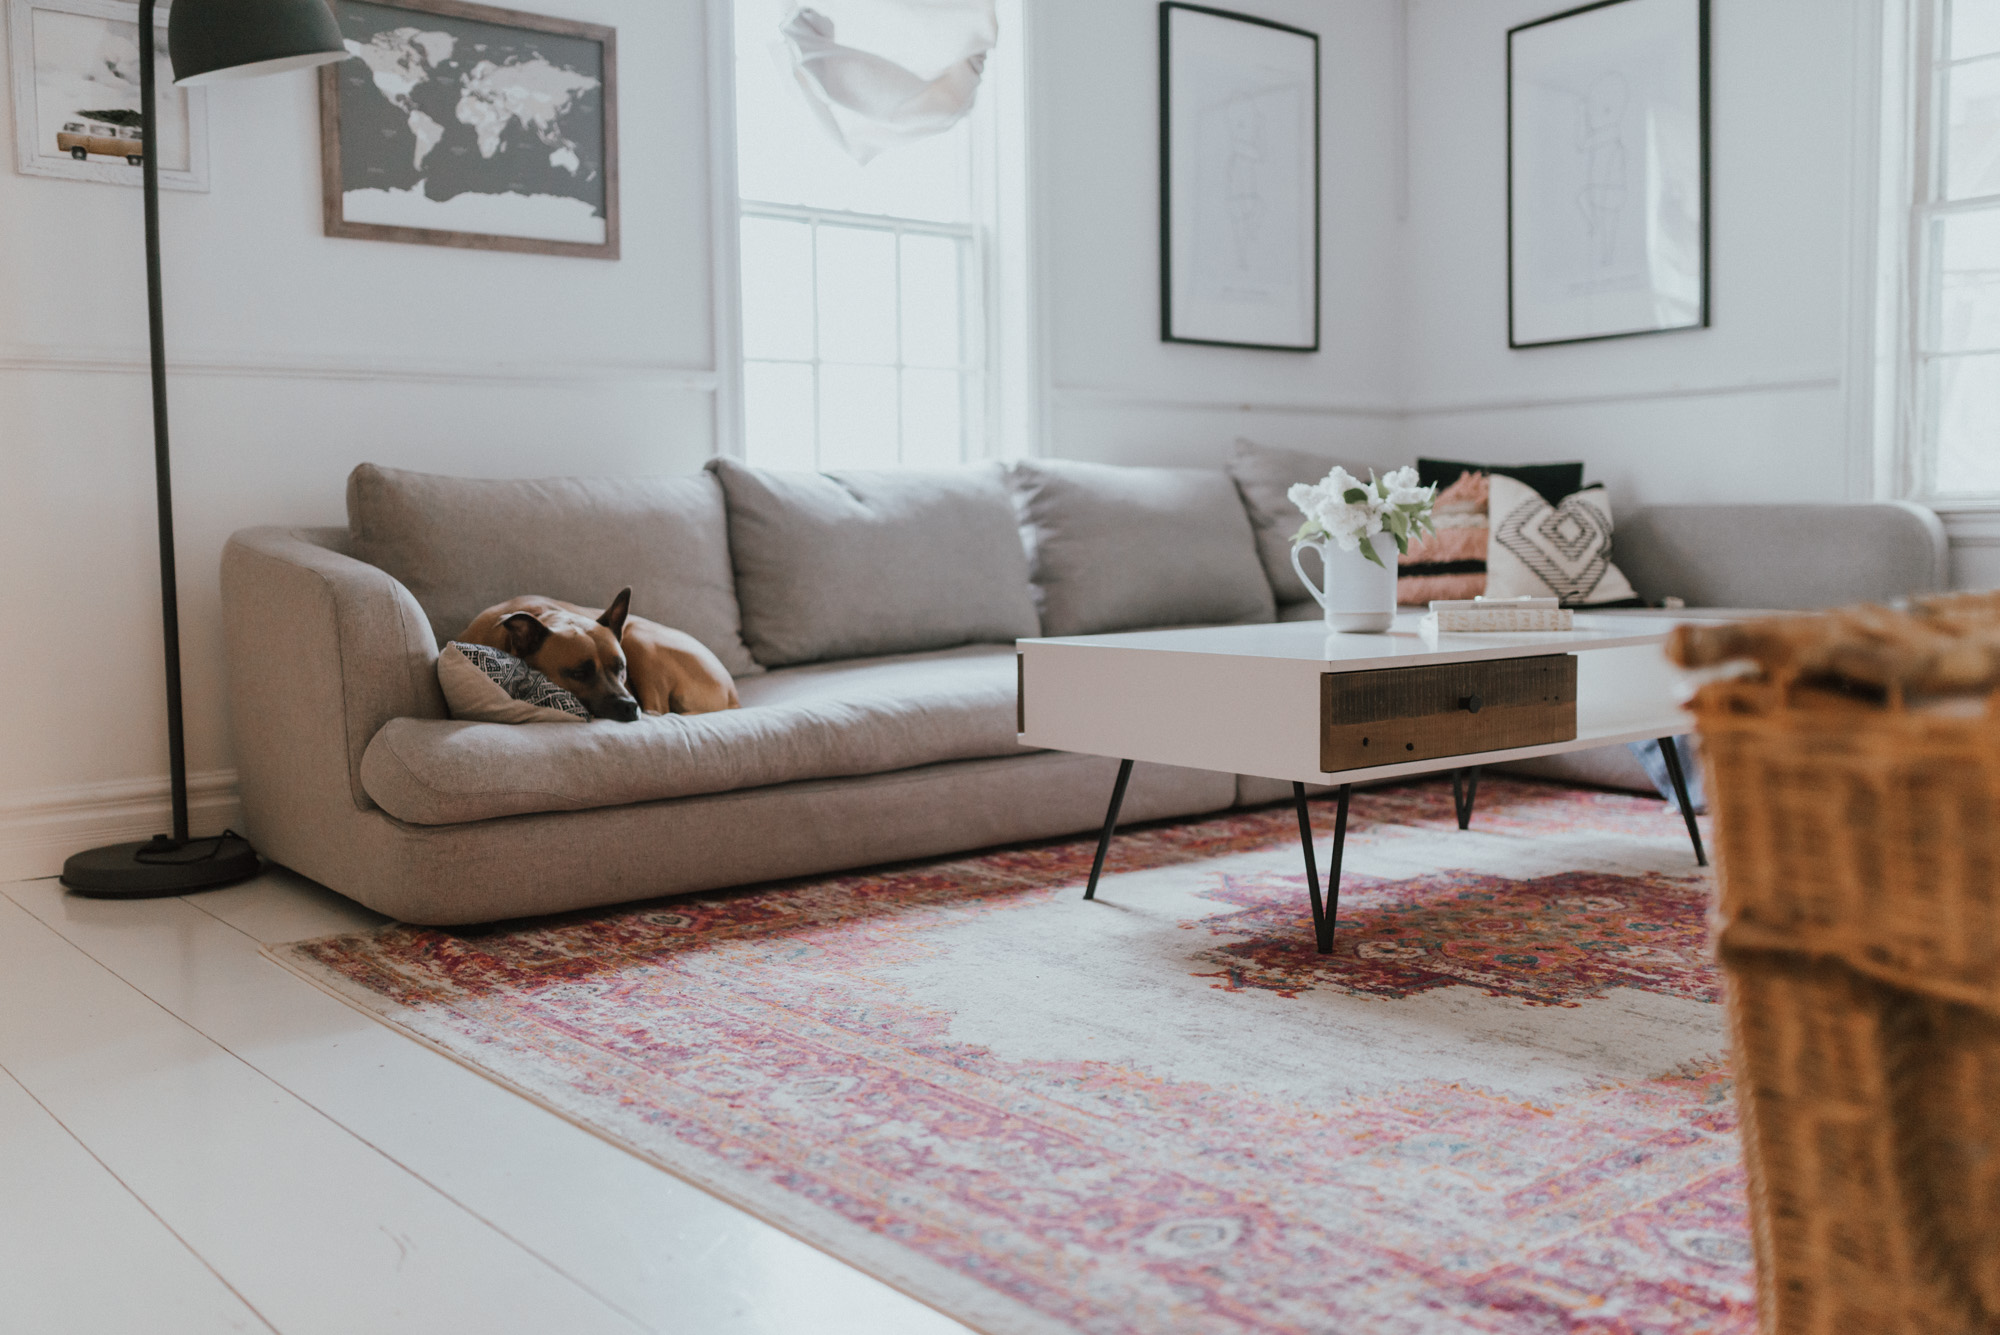 The Wild Decoelis | 5 Ways To Add Summer Vibes To Your Living Room | White Coffee table, grey sectional couch, pink rug